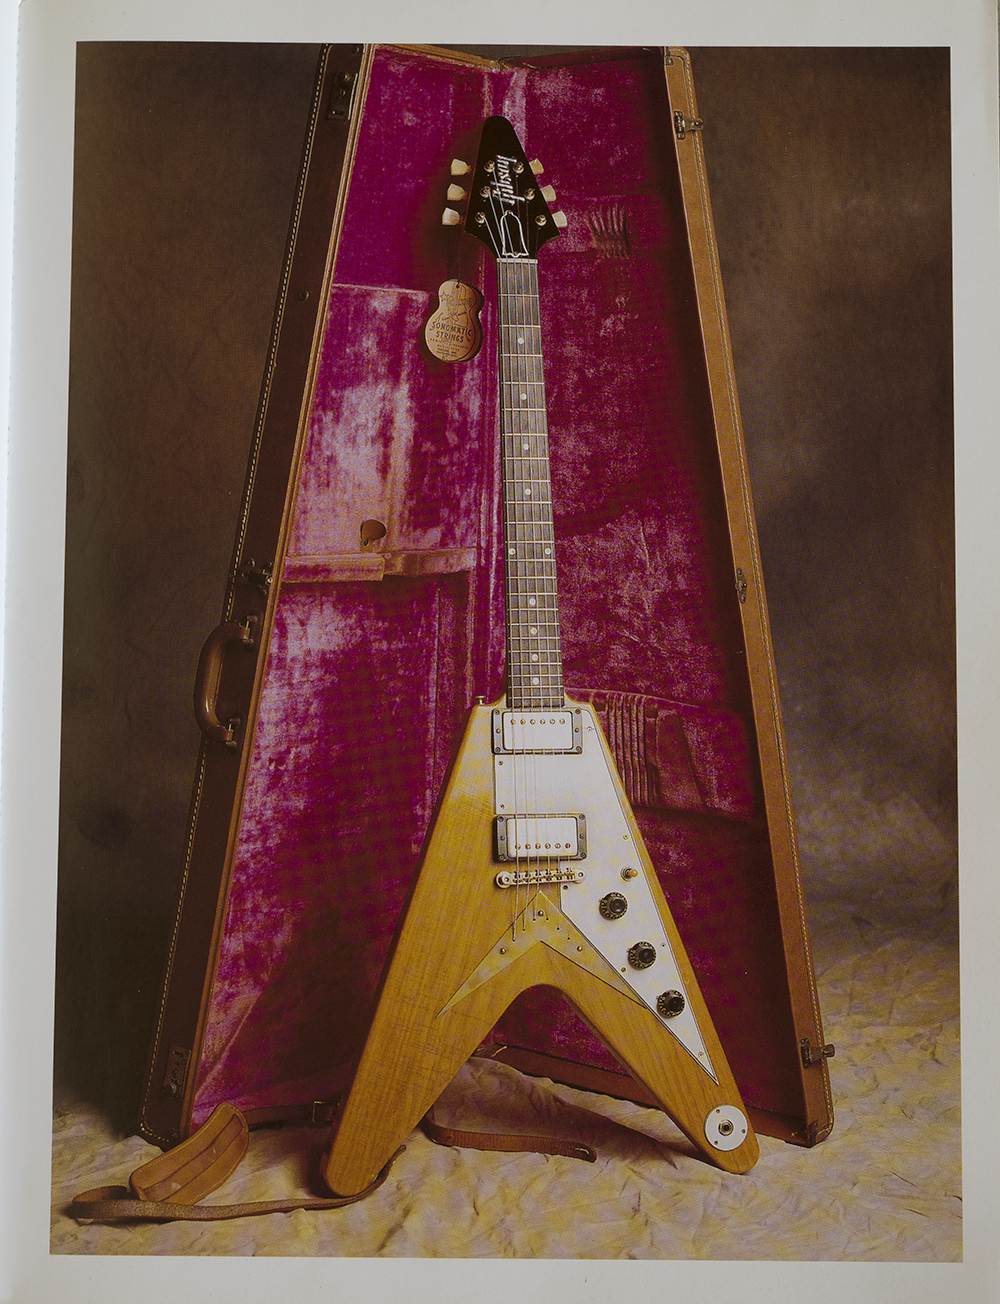 A photo from the early 1990's that was done for the Dream Guitars book session, I participated in the book with many of my instruments